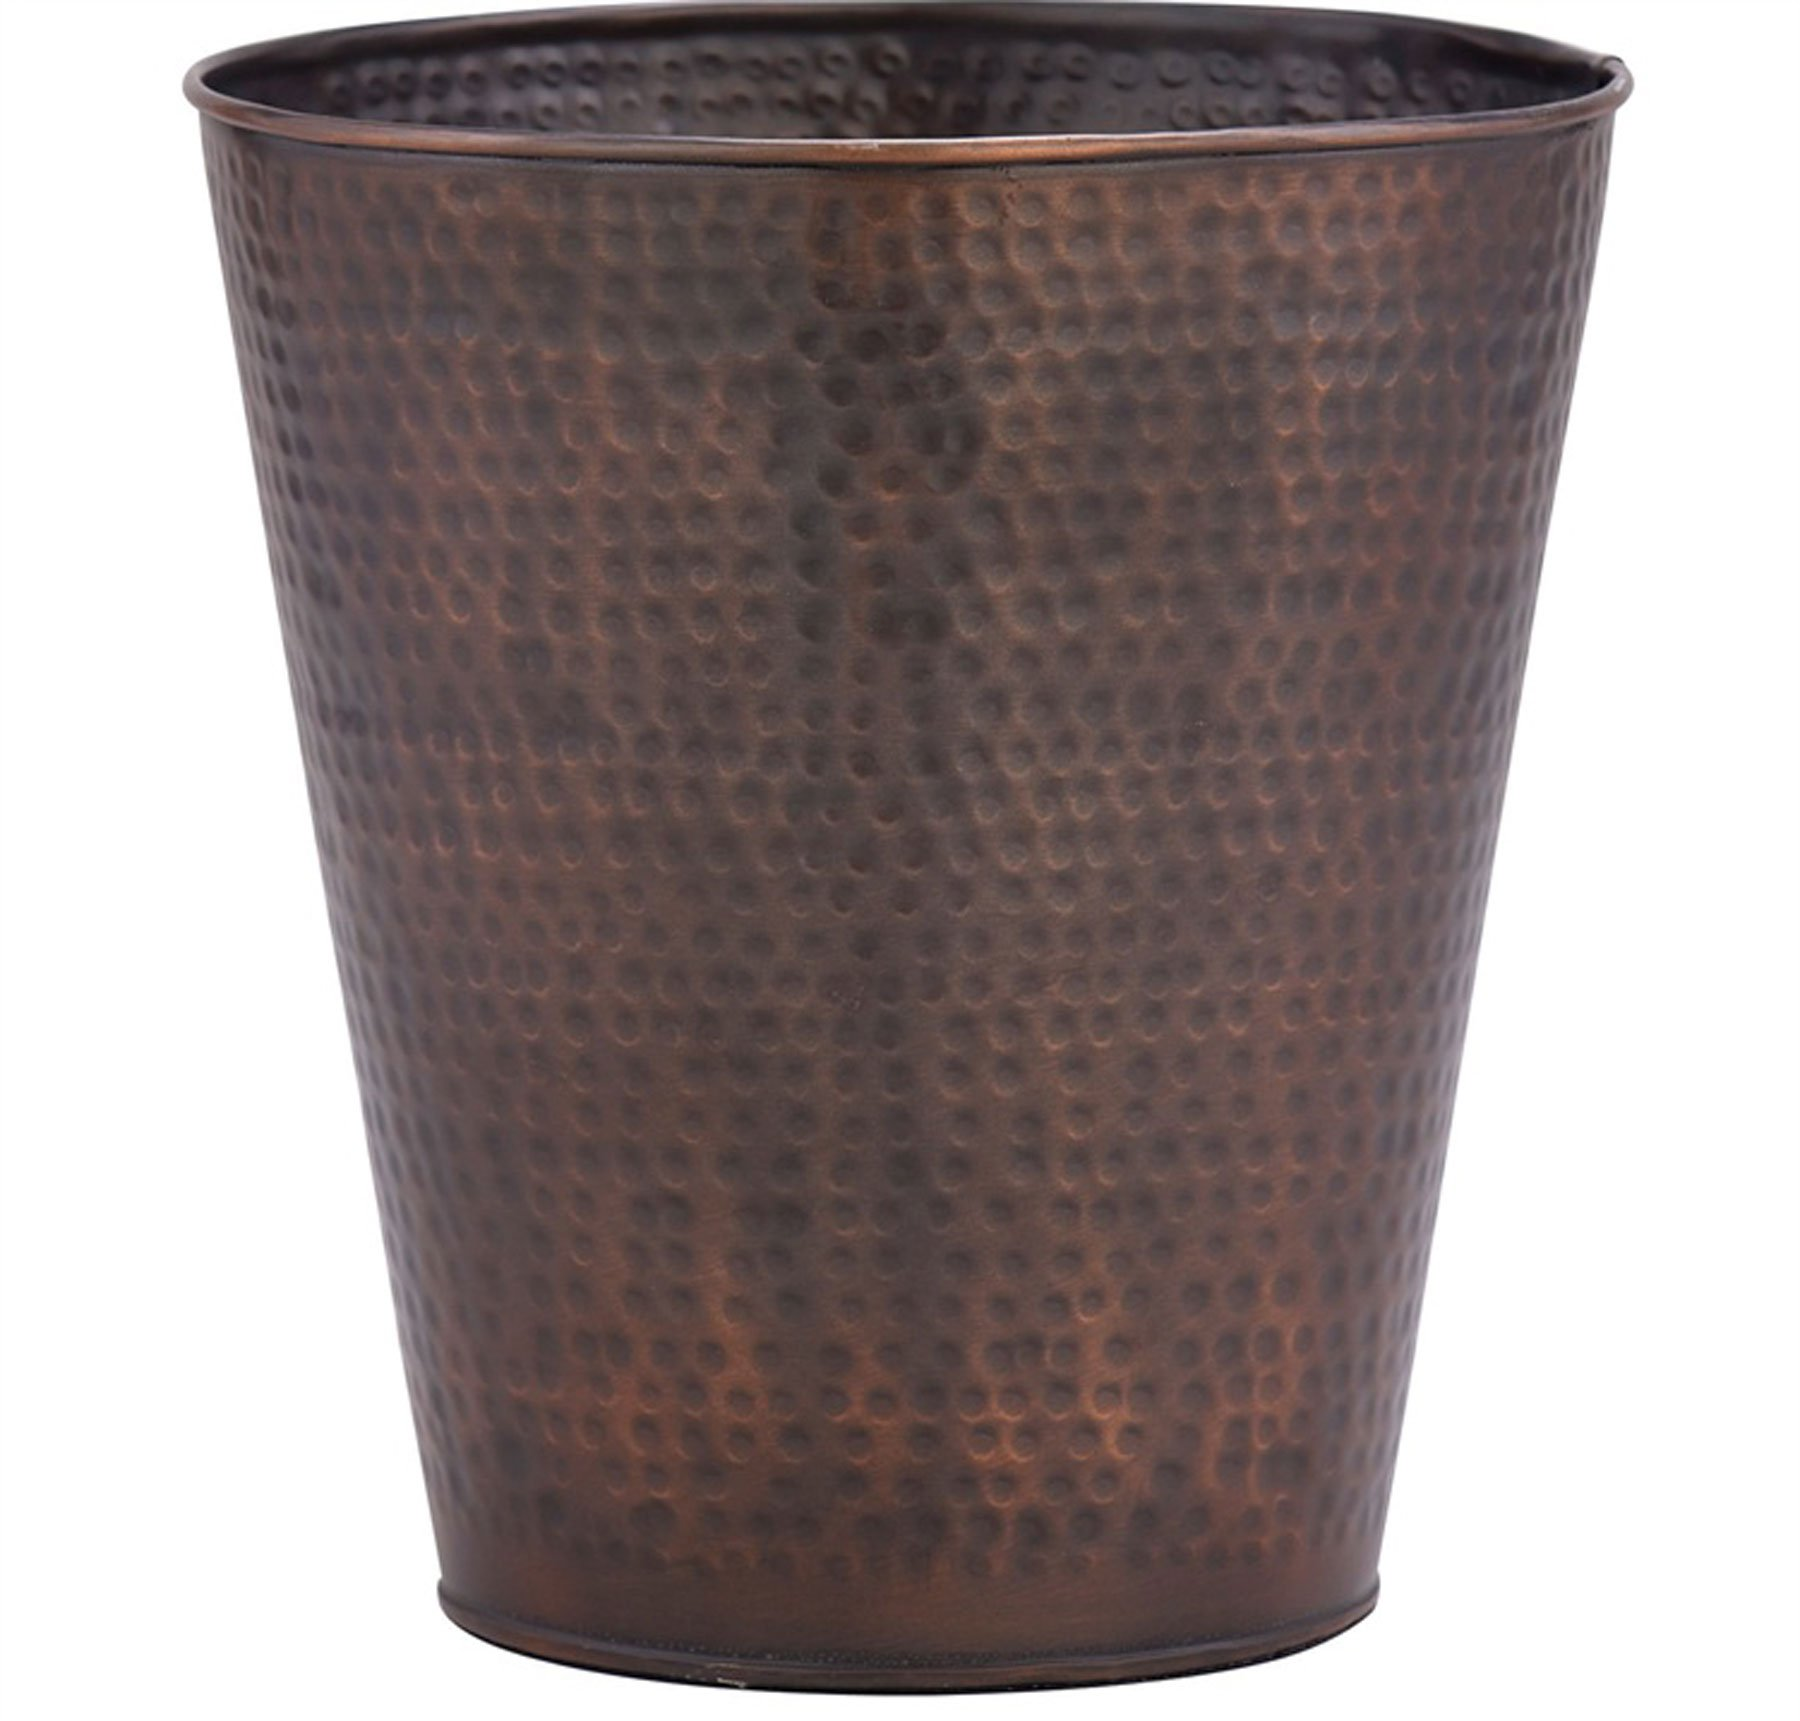 Hammered Copper Finish Antique Style Waste Basket by Park Designs